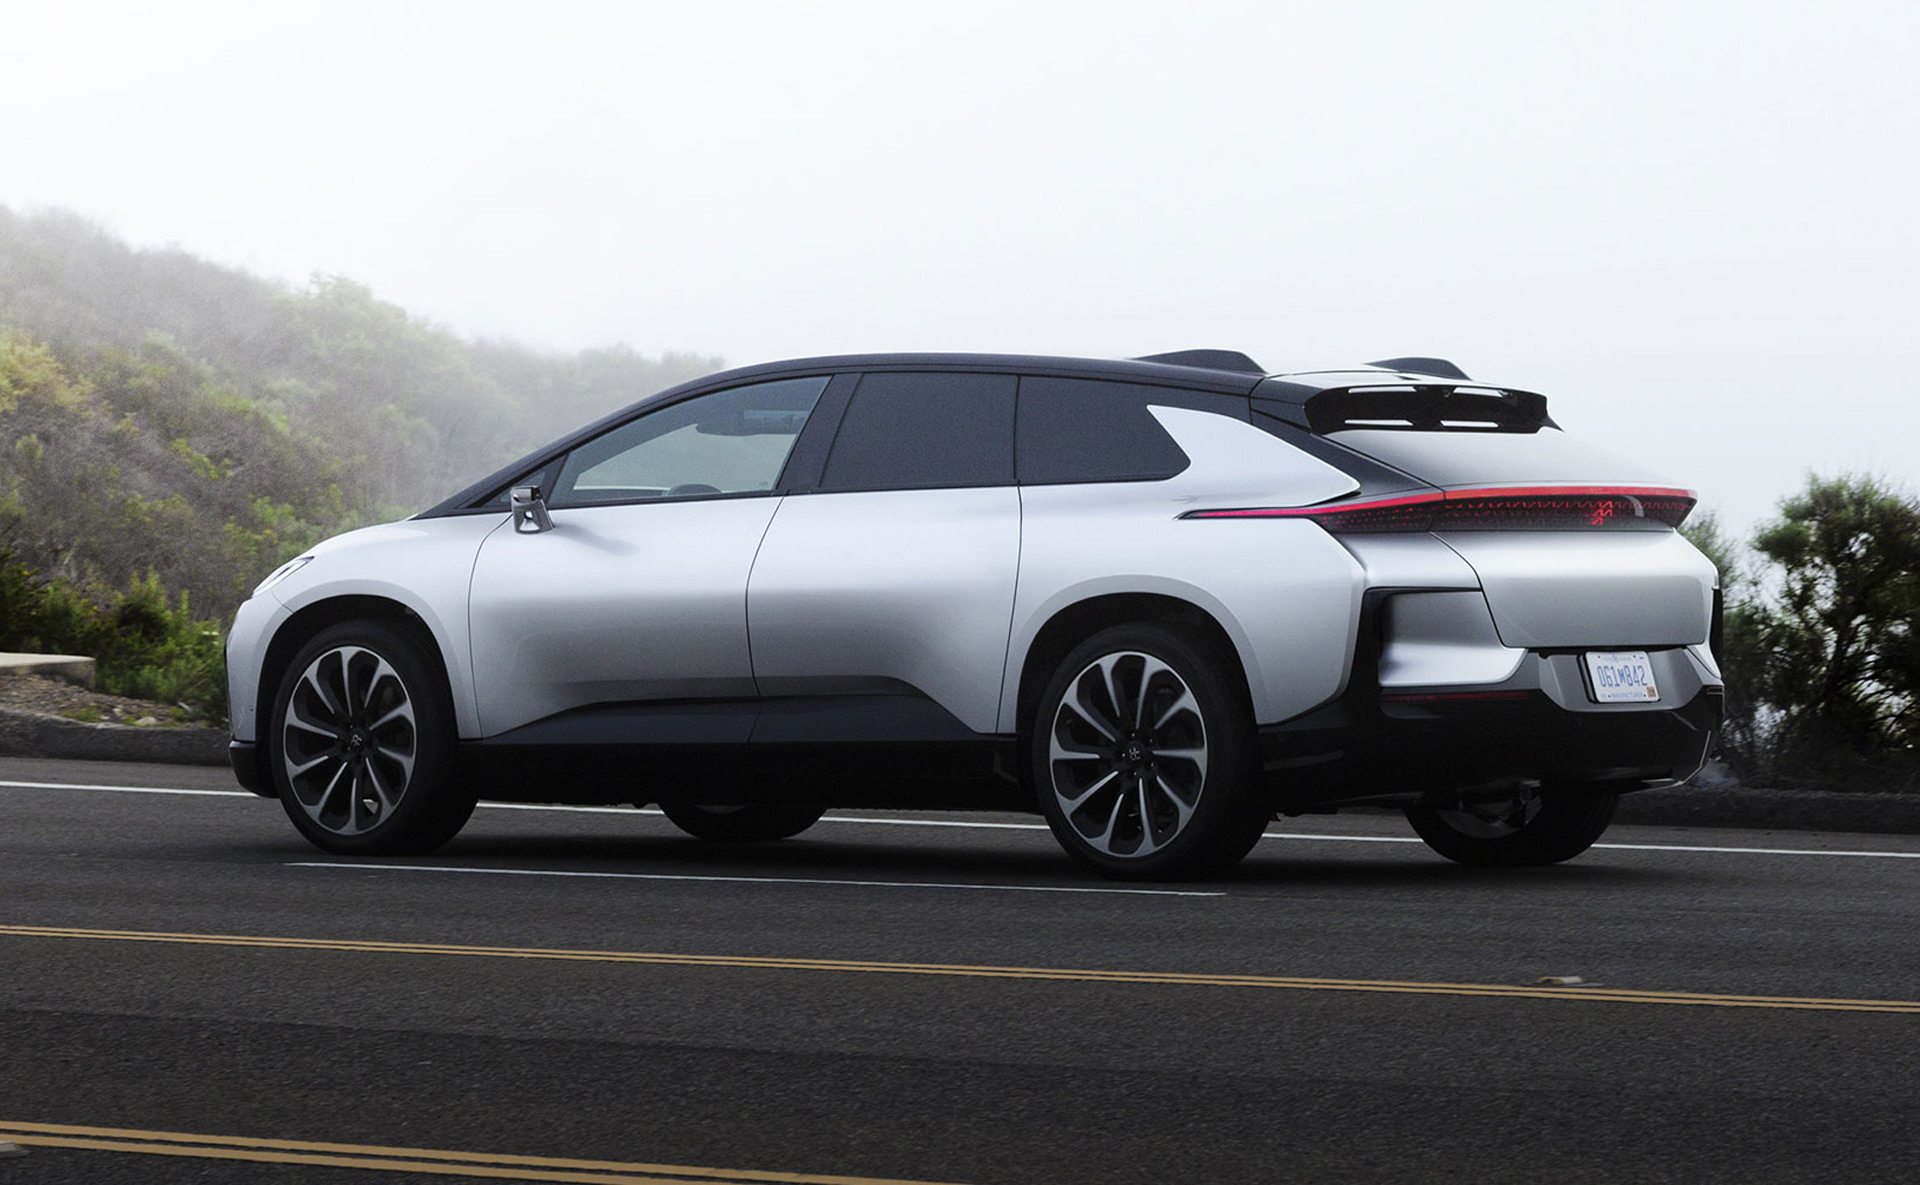 Did Tata just buy a $900M stake in Faraday Future?